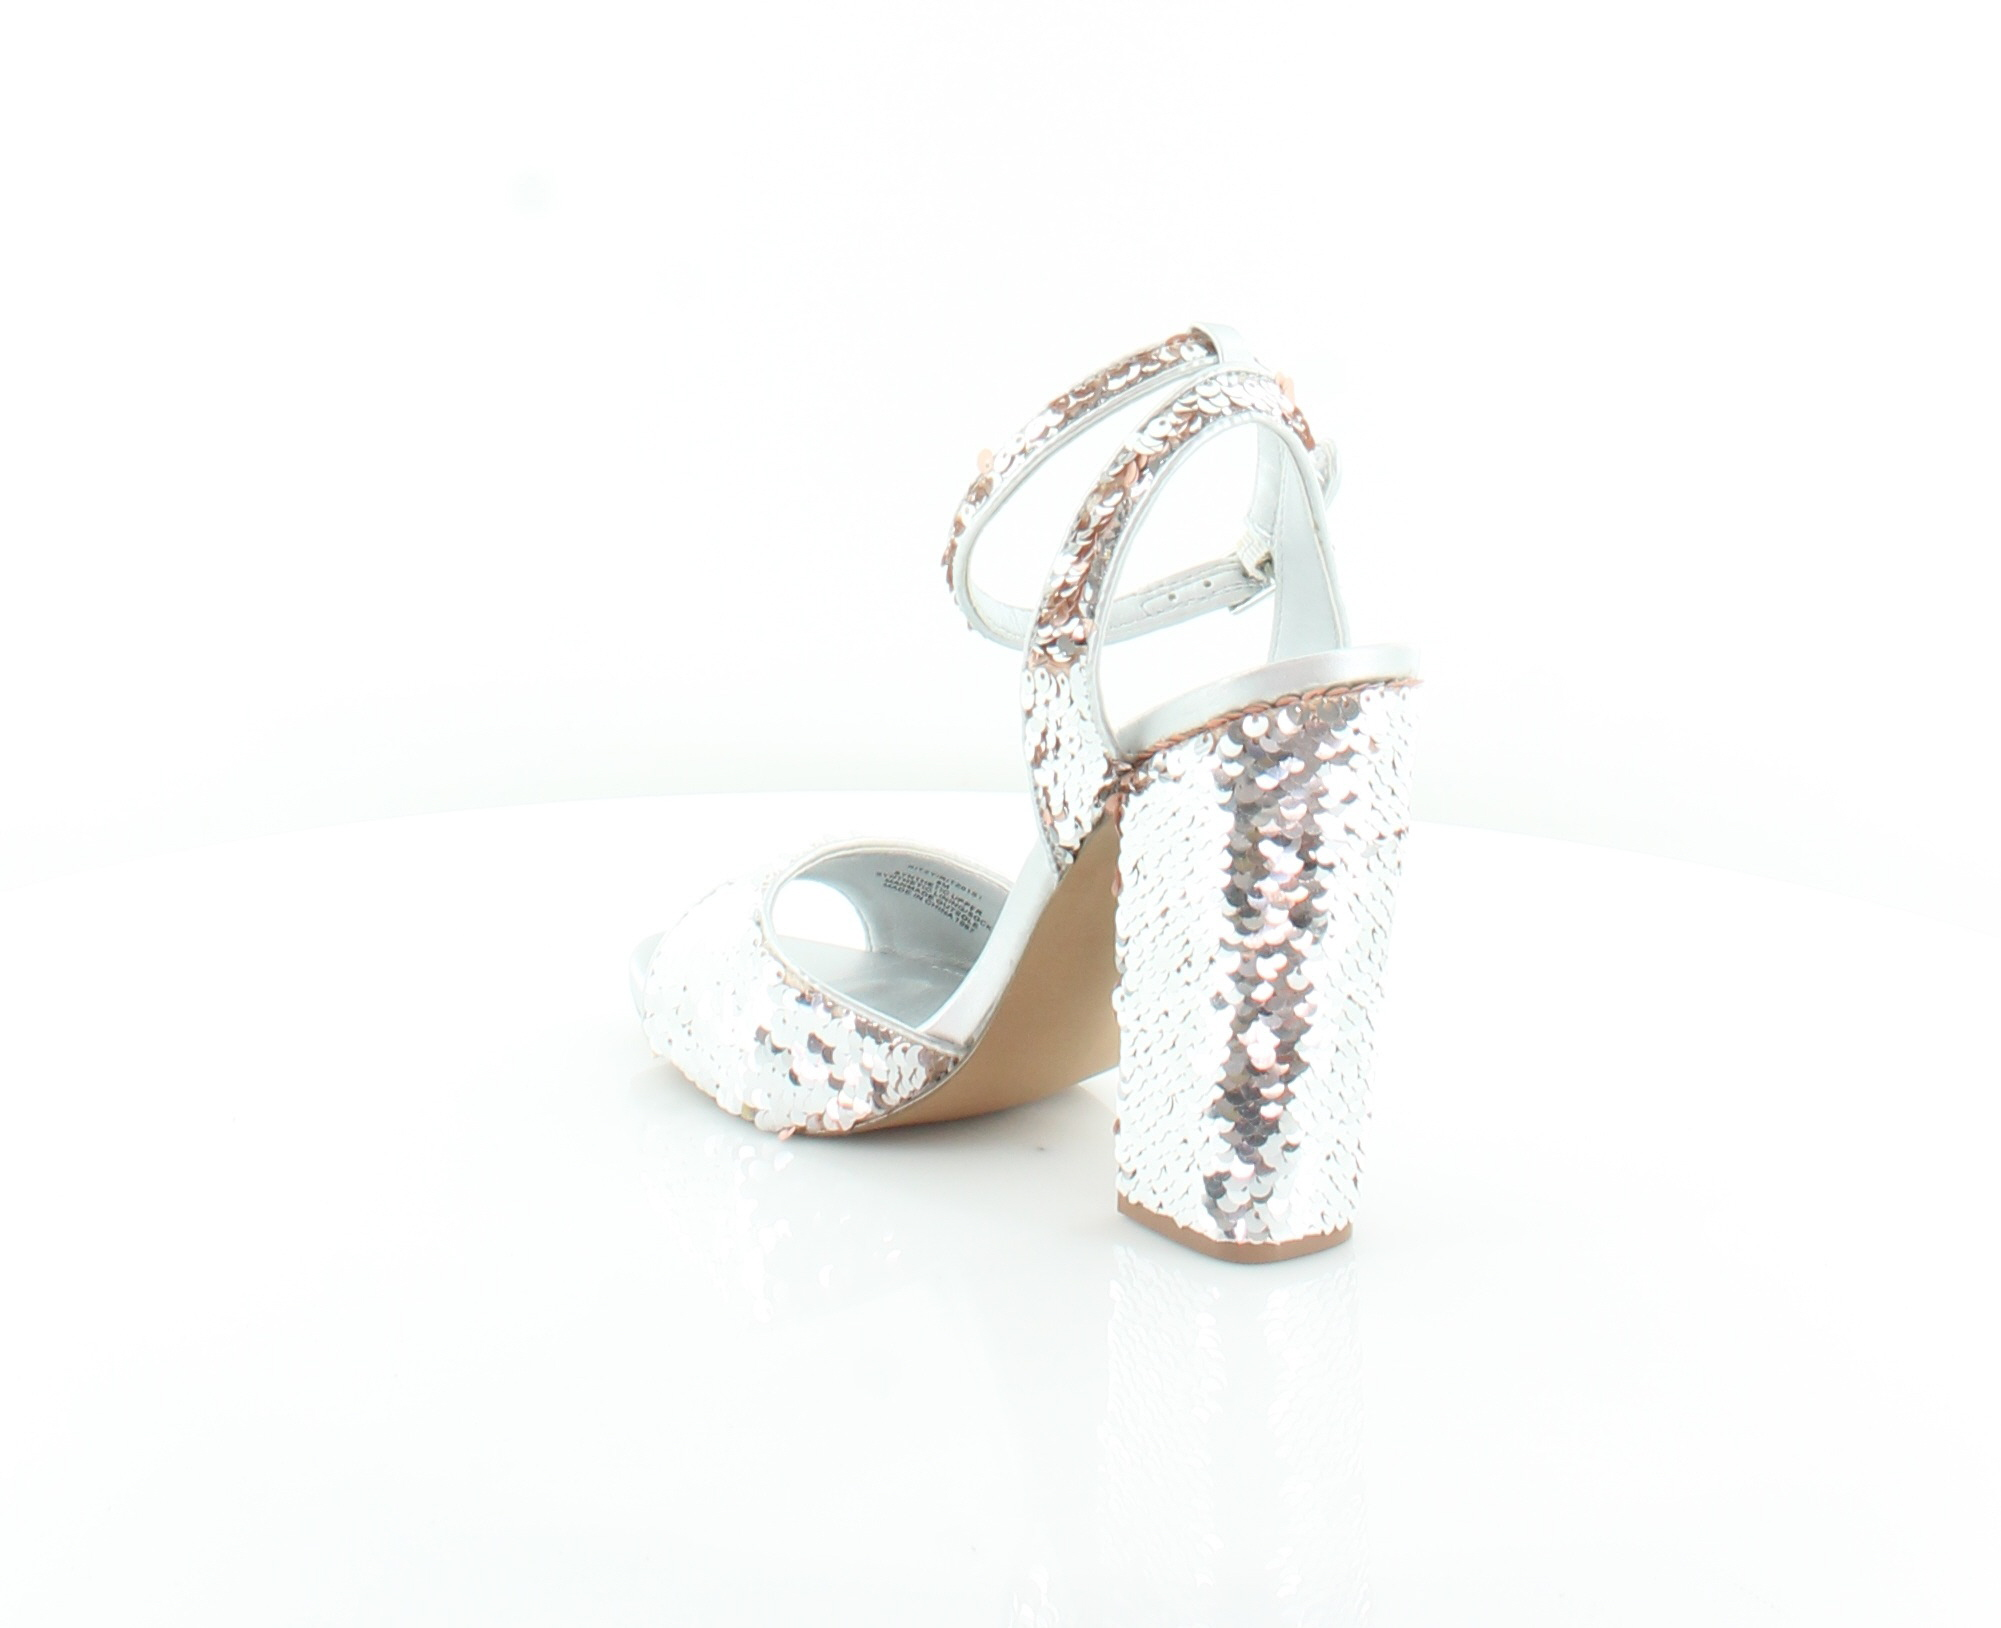 6147ea1b35e STEVE MADDEN NEW Ritzy Silver Womens Shoes Size 8 M Sandals MSRP $109